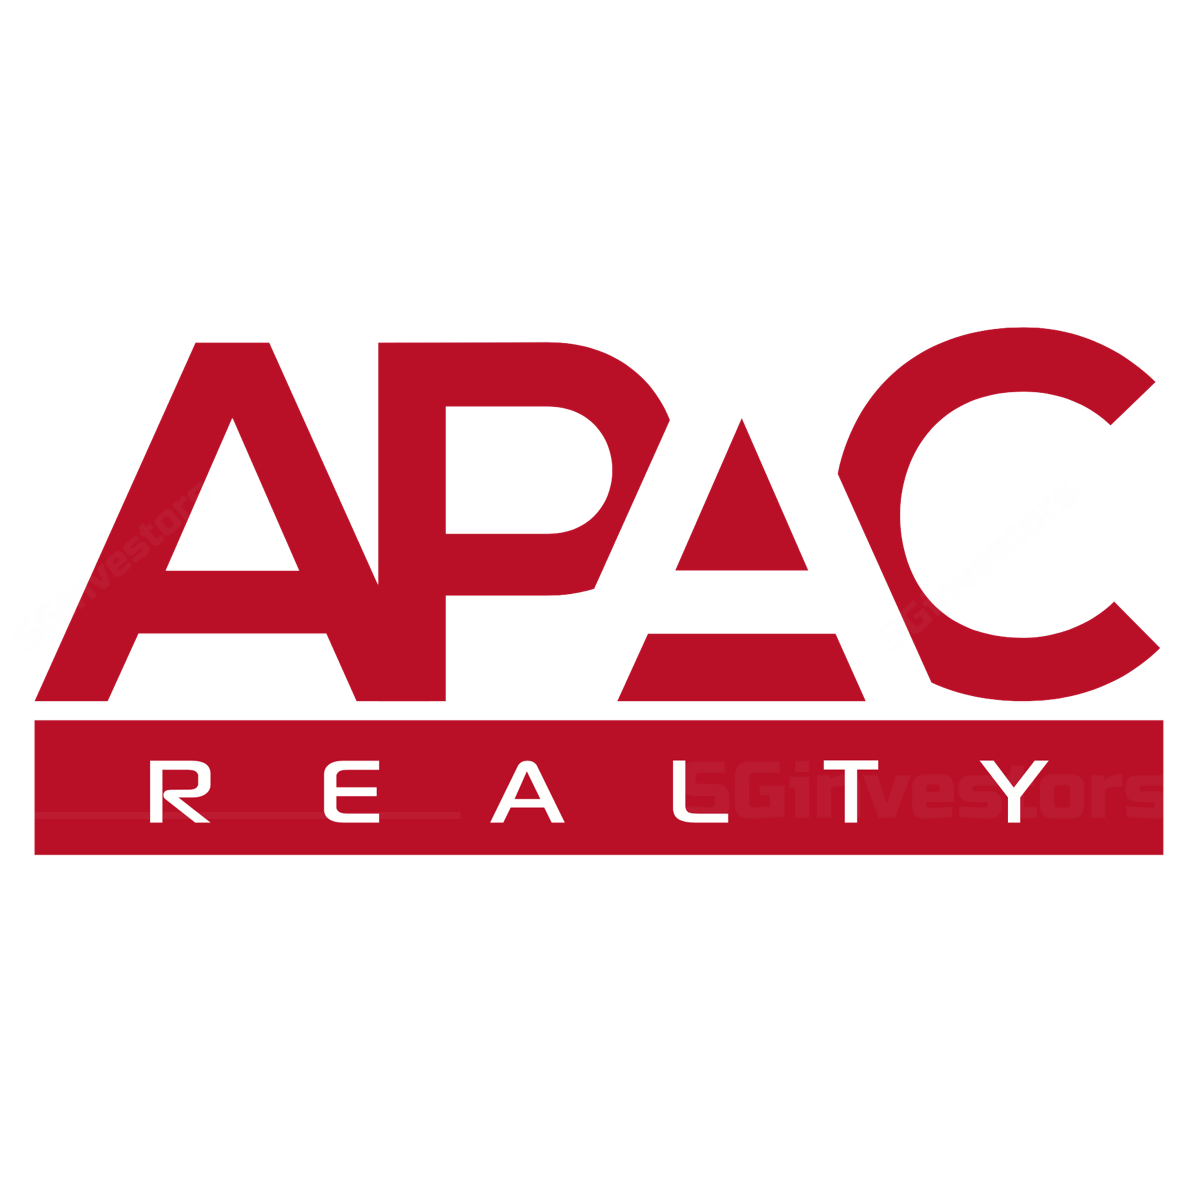 APAC Realty - DBS Vickers 2018-03-19: Strong Property Sales Momentum